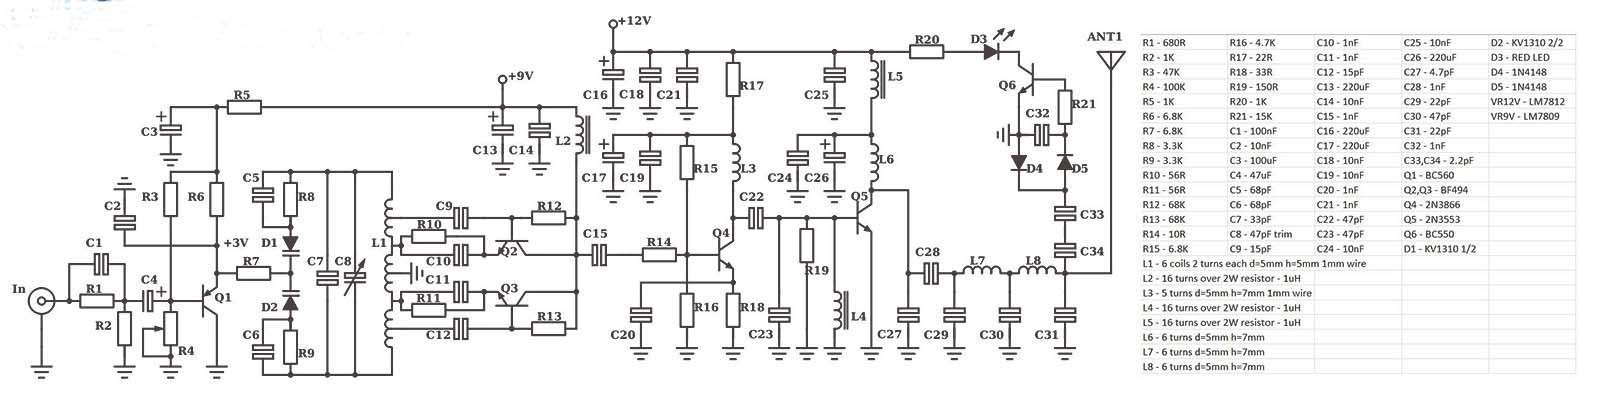 How To Make A 2 5w Fm Transmitter Circuit Cover 3 10km Range FM Designs 9v Radio Diagram